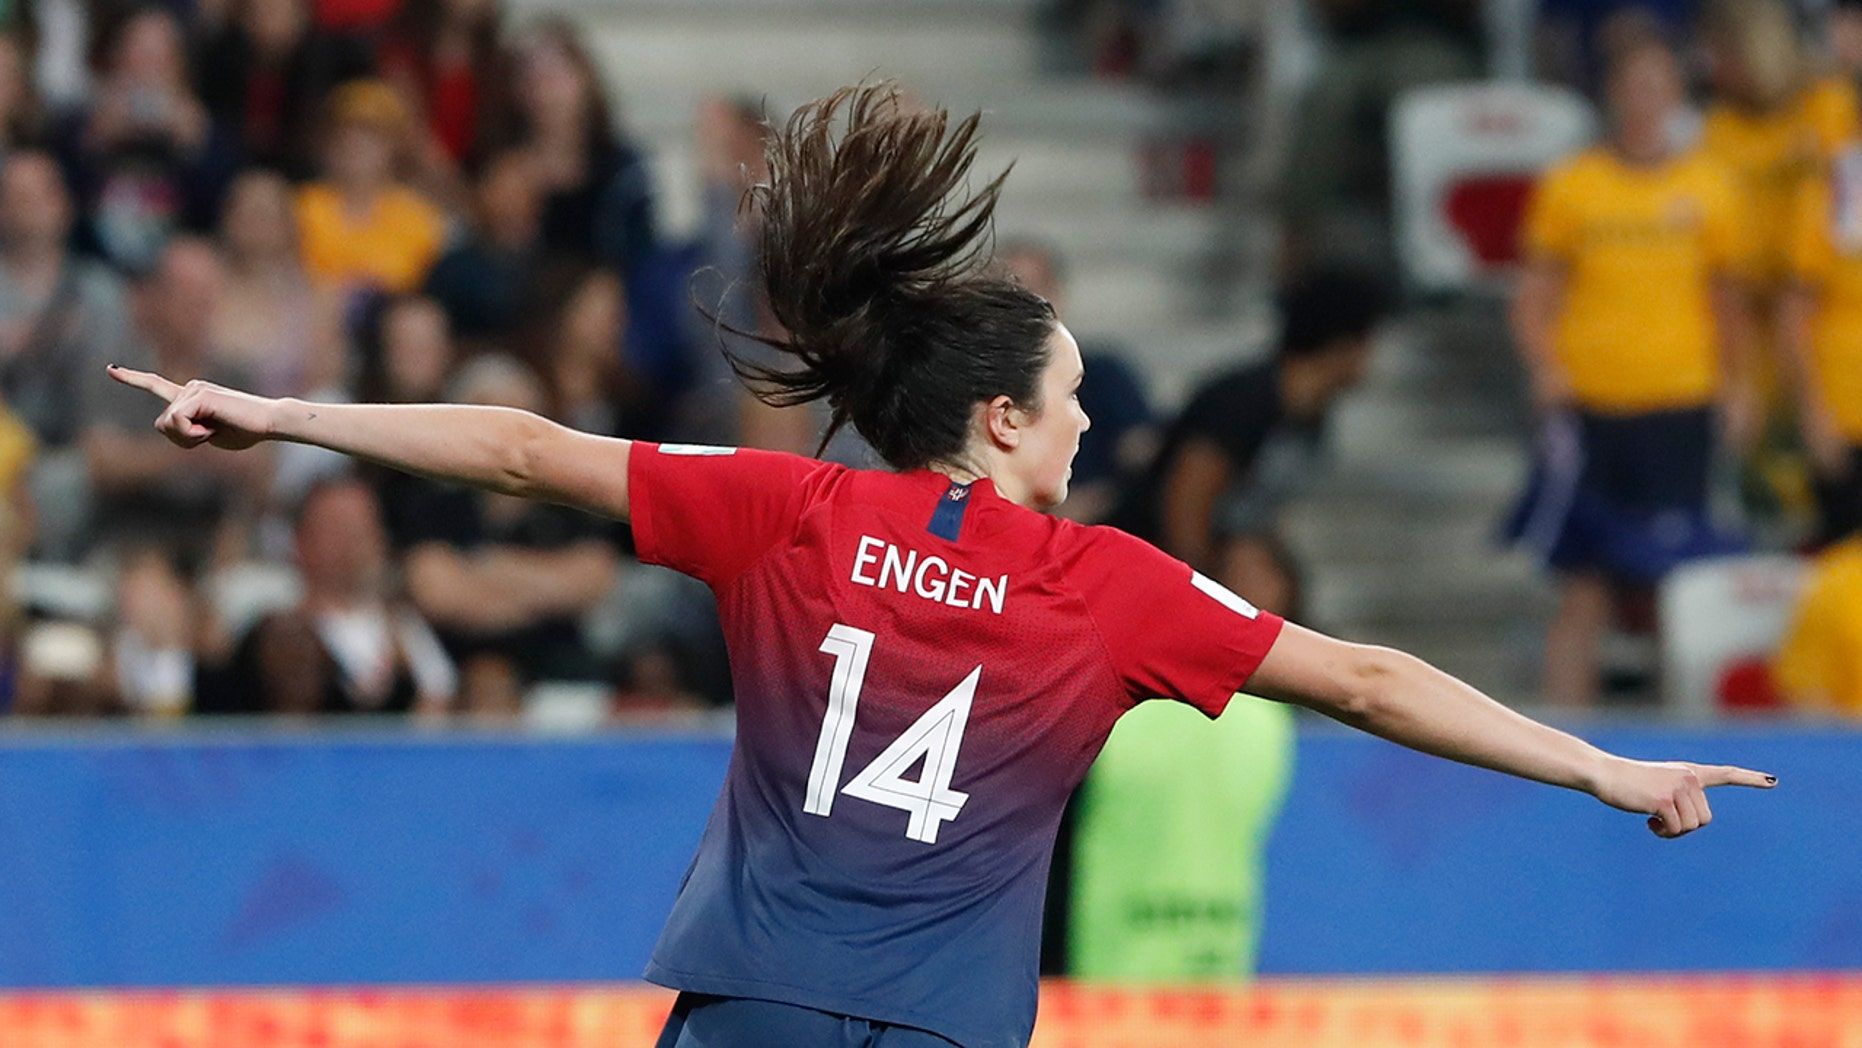 Norway's Ingrid Syrstad Engen celebrates after scoring in the penalty shoot-out of the Women's World Cup round of 16 soccer match between Norway and Australia at the Stade de Nice in Nice, France, Saturday, June 22, 2019. (AP Photo/Thibault Camus)